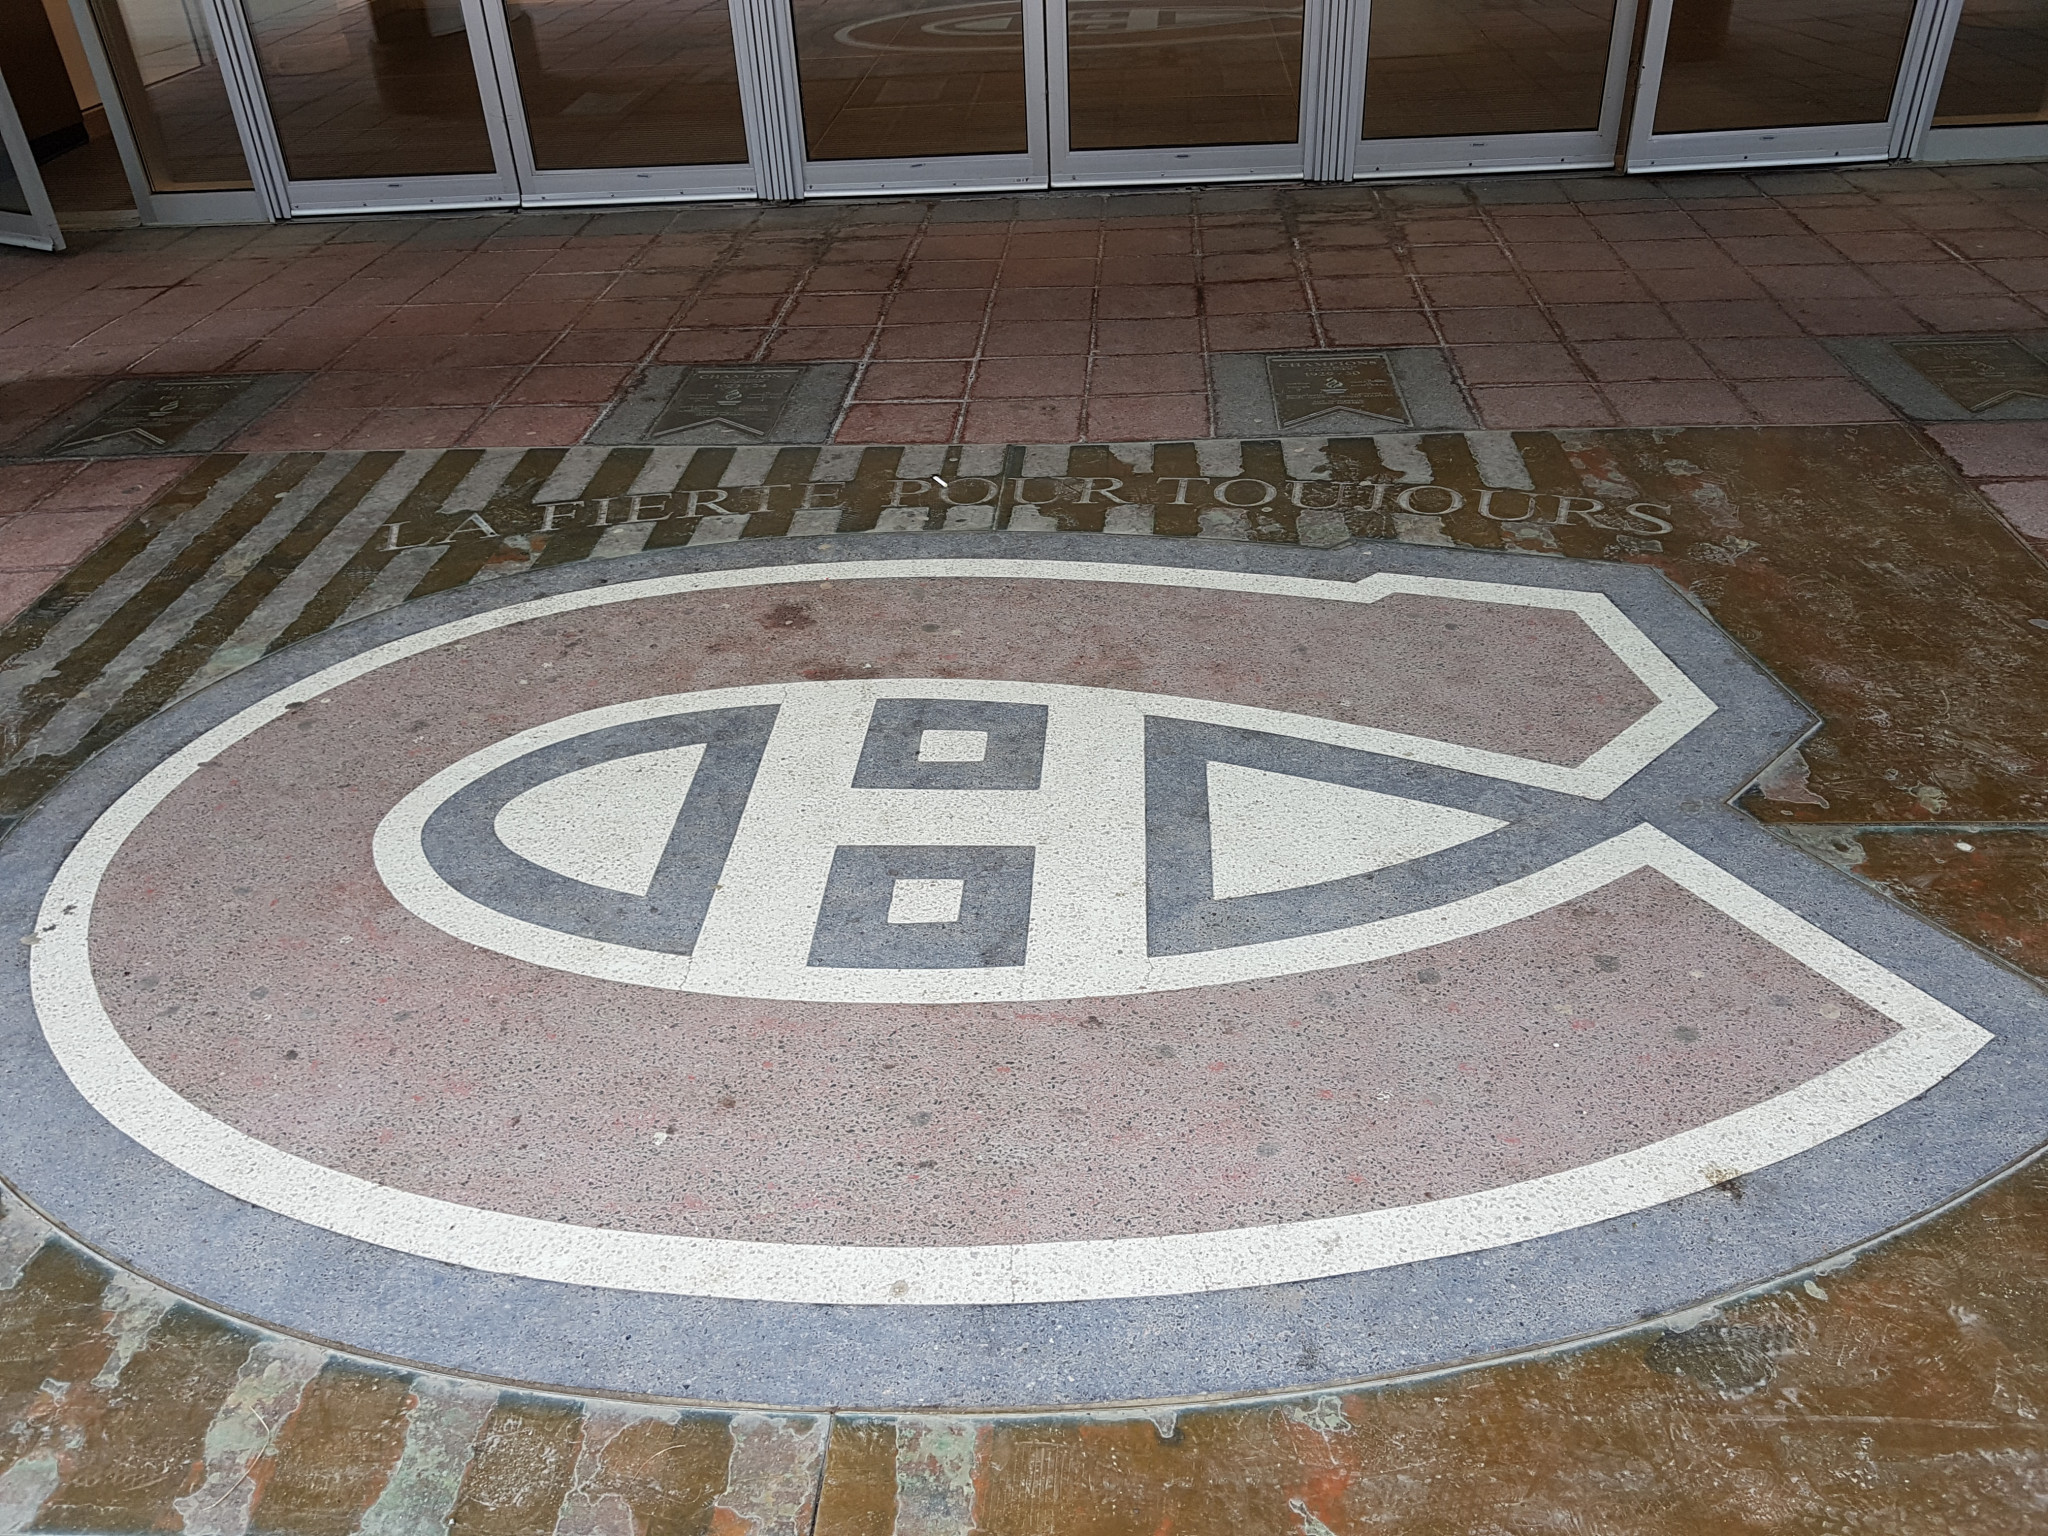 A faded crest was one of the few reminders that ice hockey's greatest team, the Montreal Canadiens, played at the Montreal Forum ©ITG